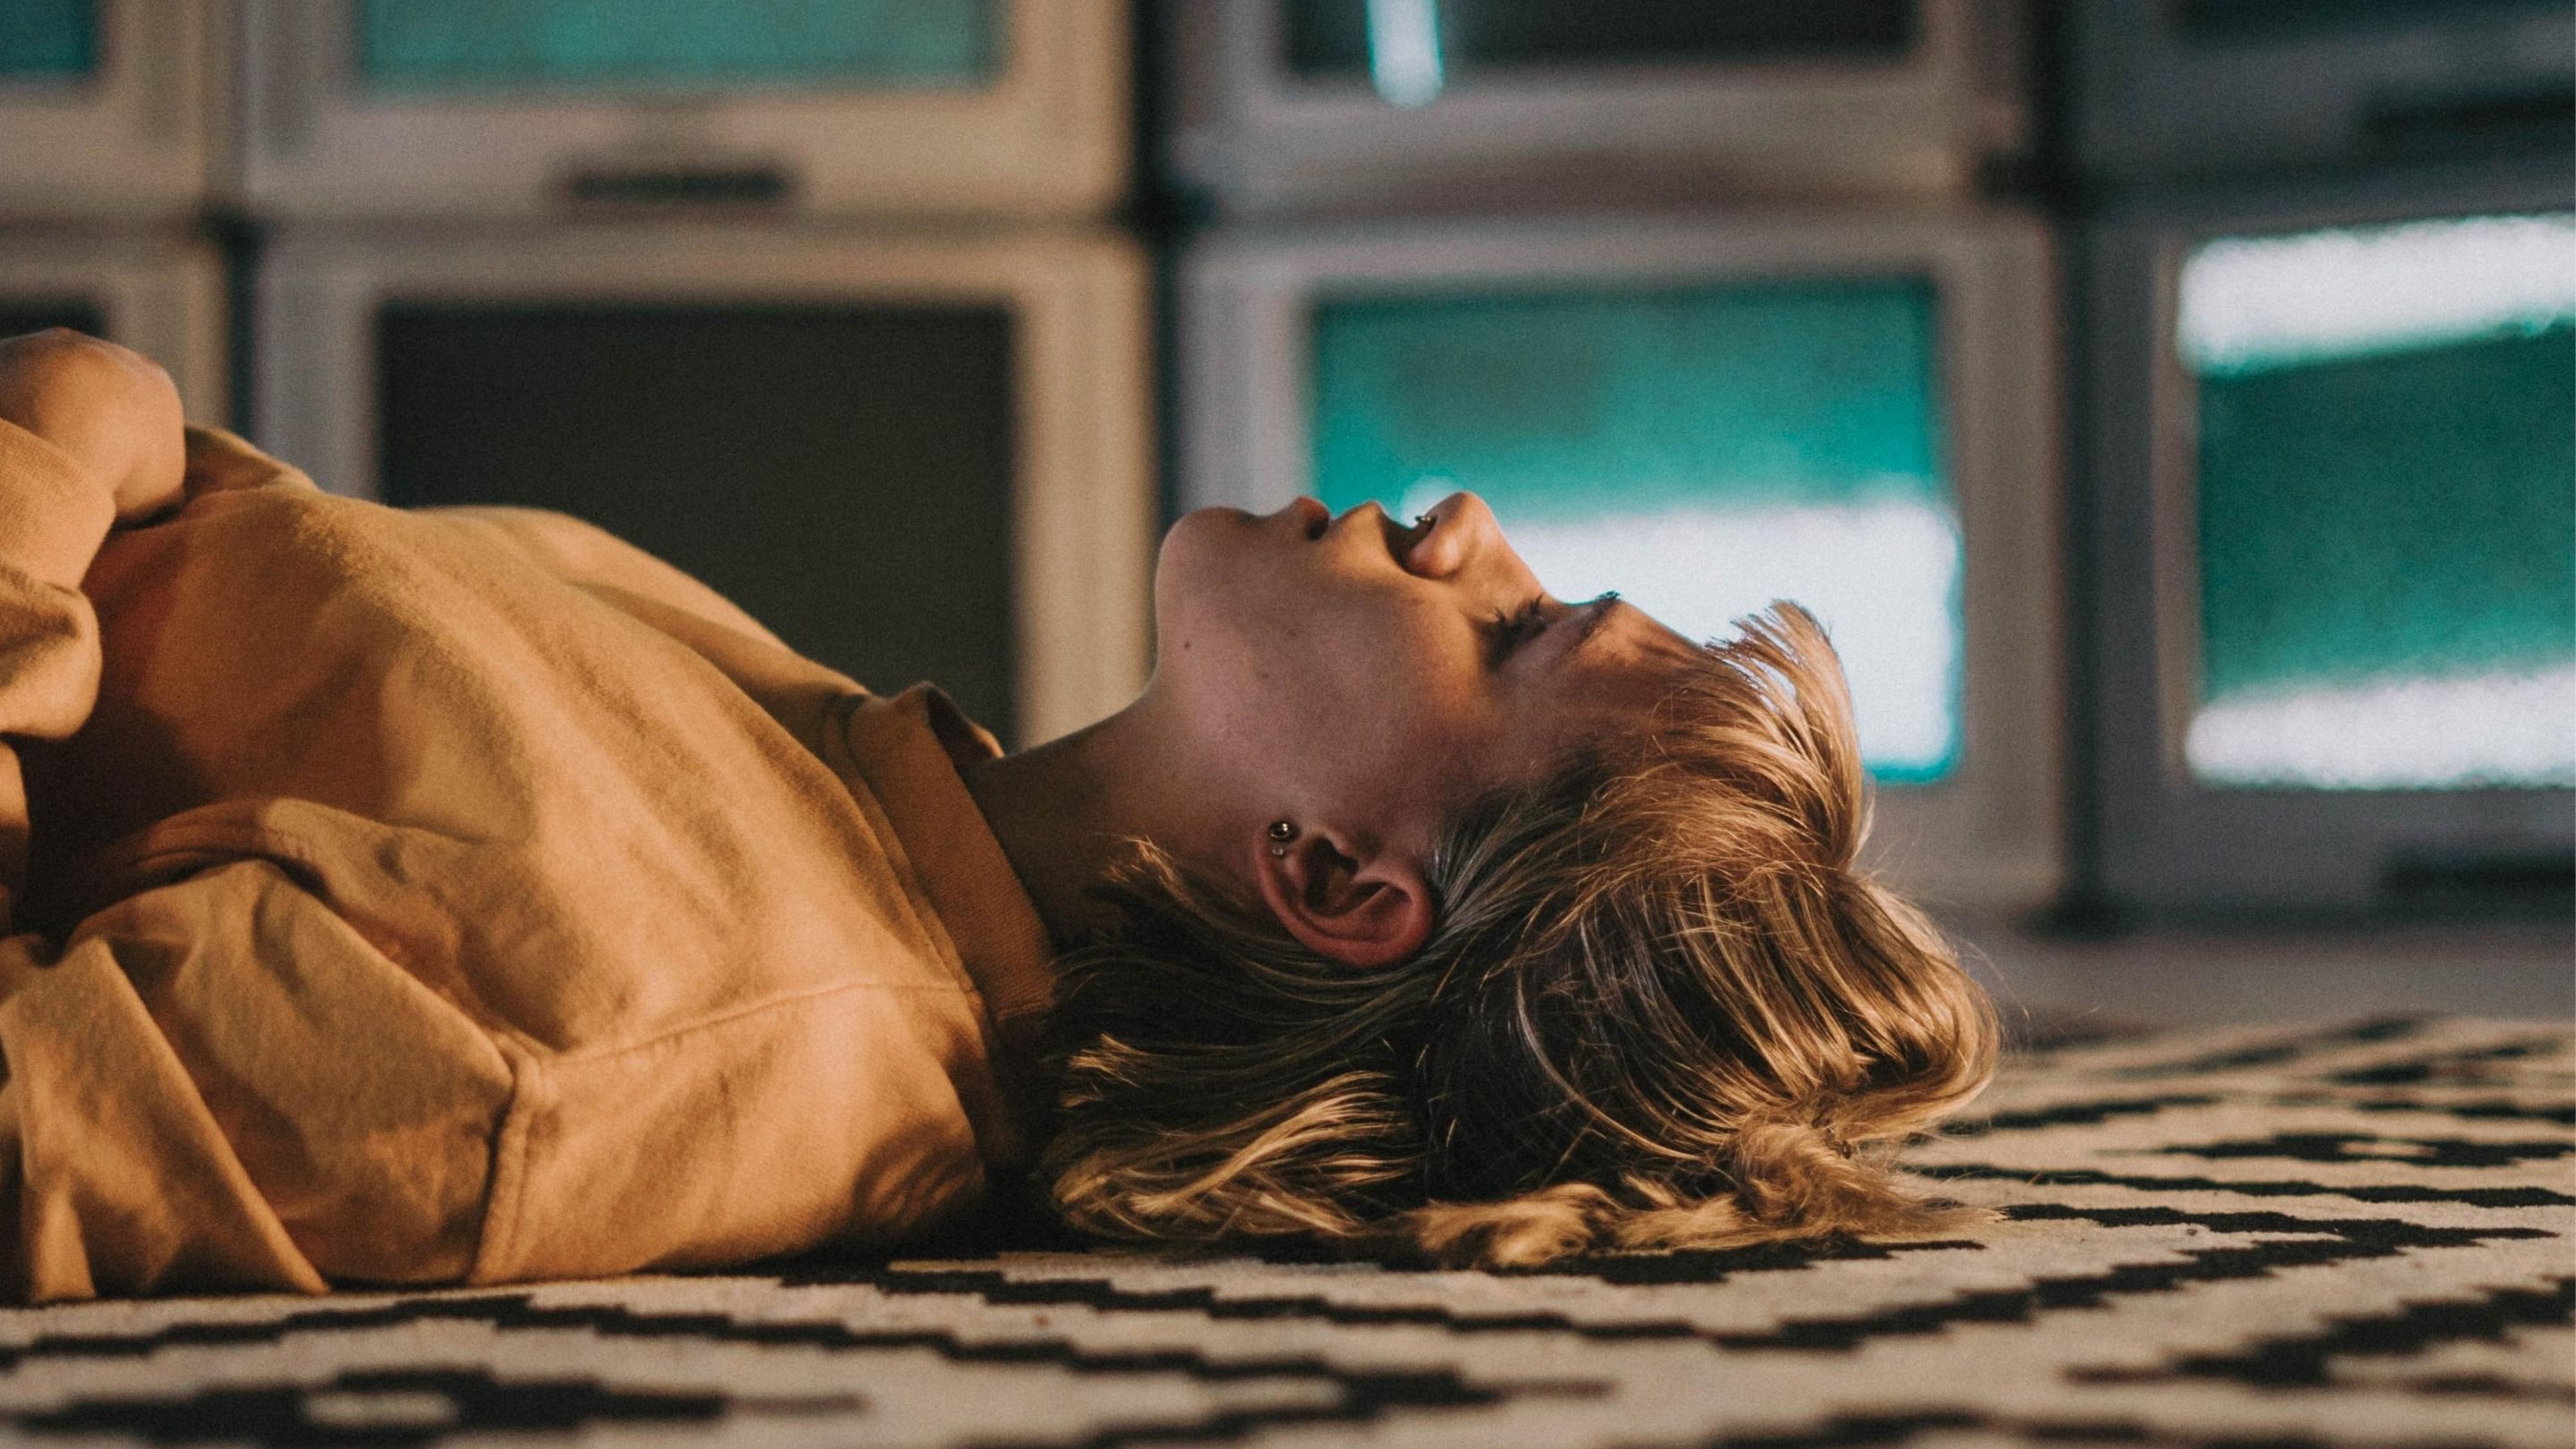 woman lying down in front of screens